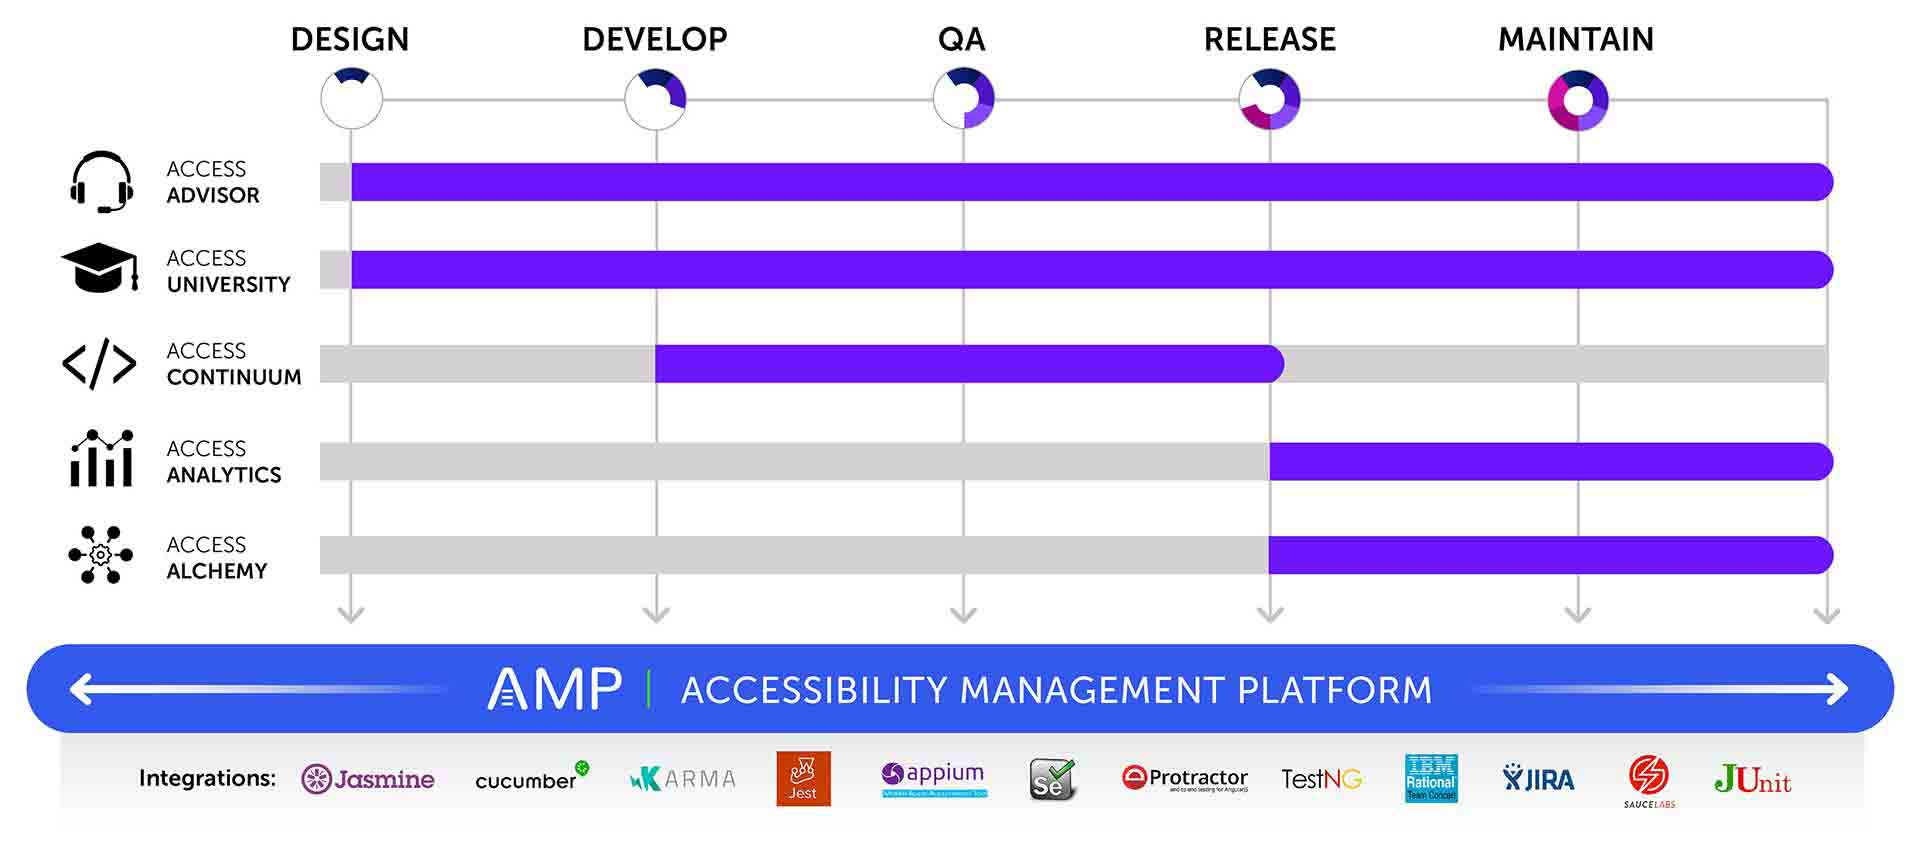 Graphic showing that AMP is the platform for all products and covers all phases of the software development lifecycle with integrations for Jasmine, Cucumber, Karma, Jest, Appium, Selenium, Protactor, TestNG, IBM Rational Team Concert, JIRA, JUnit, and Sauce Labs. Access Advisor and University cover all phases as well; Access Continuum covers Develop, QA, Release stages; Access Analytics and Alchemy cover the QA, Release, and Maintain stages.